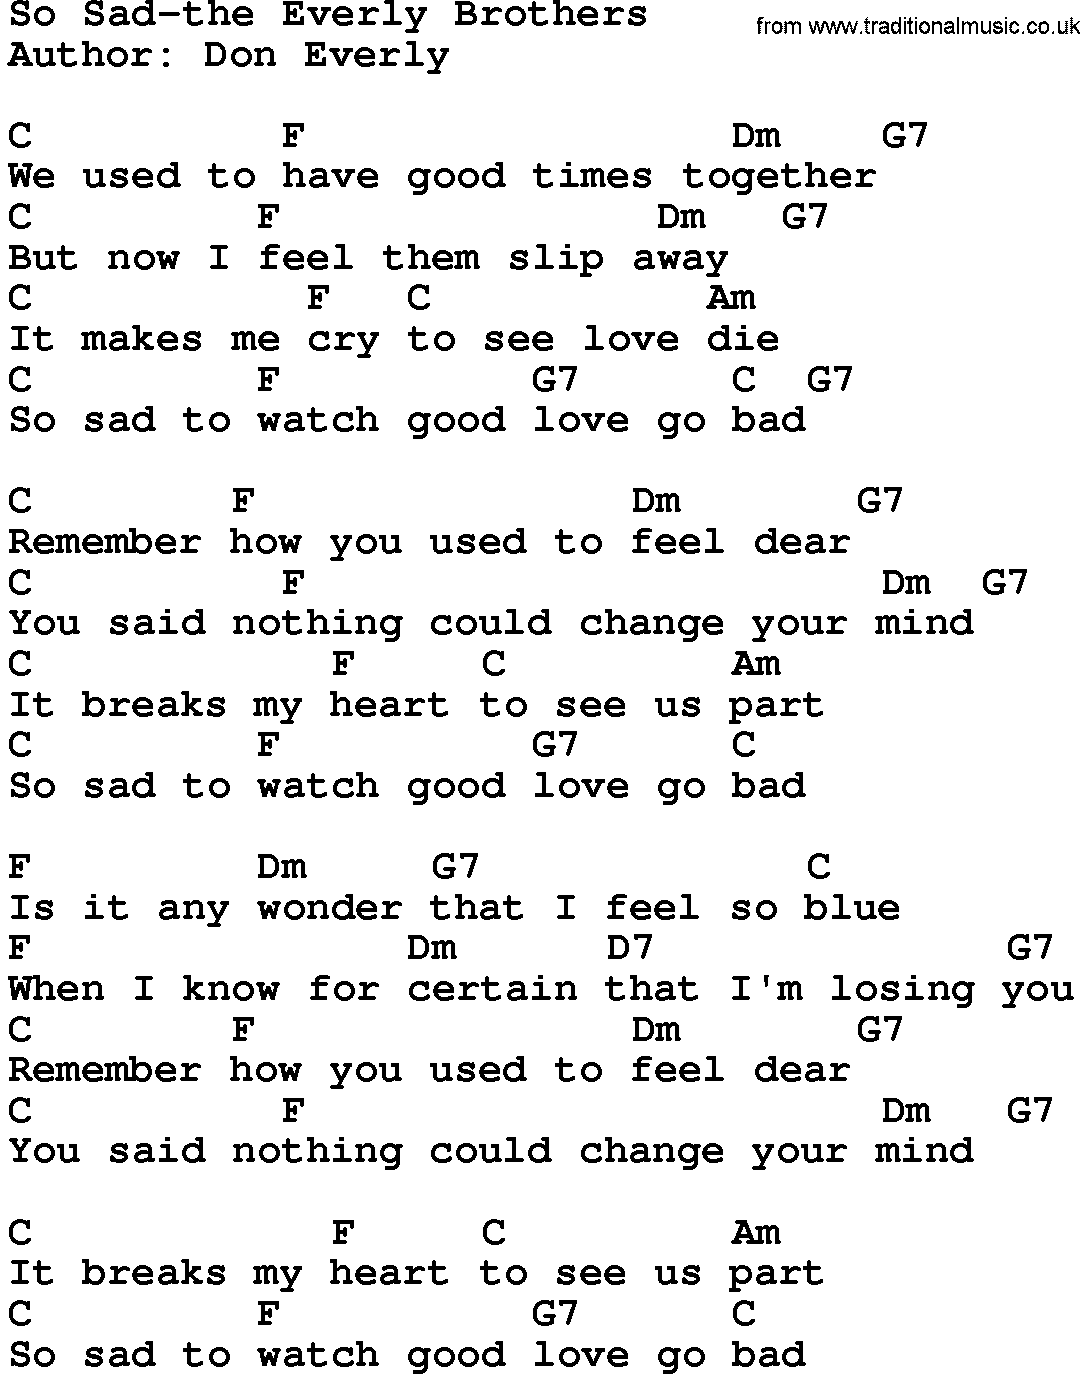 Country Music So Sad The Everly Brothers Lyrics And Chords